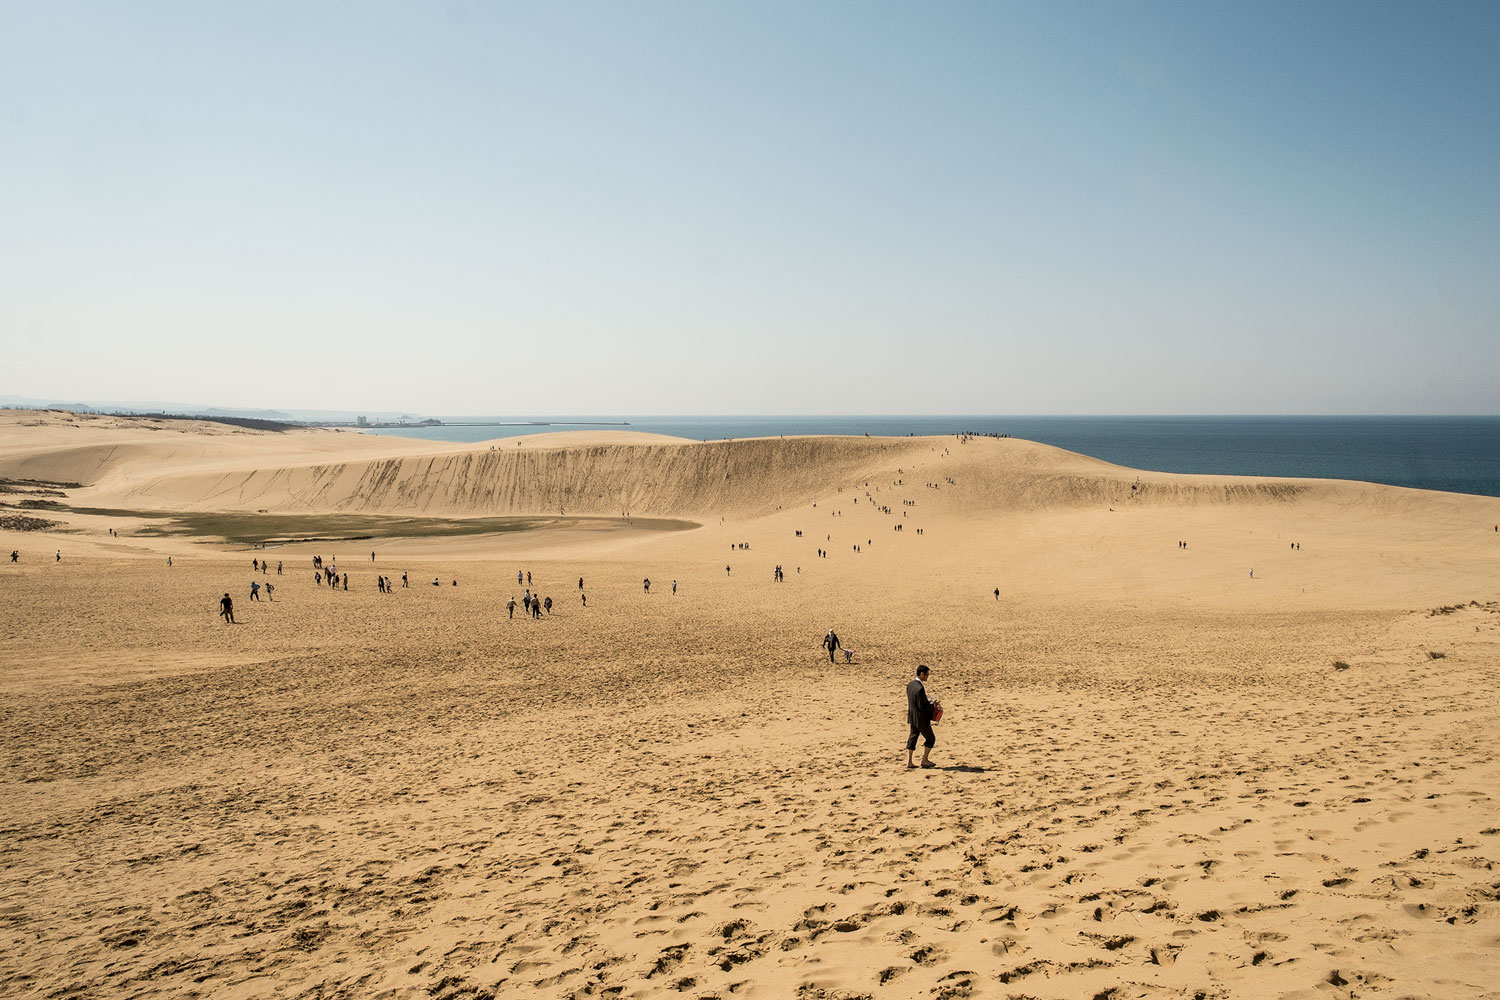 The Tottori sand dunes.